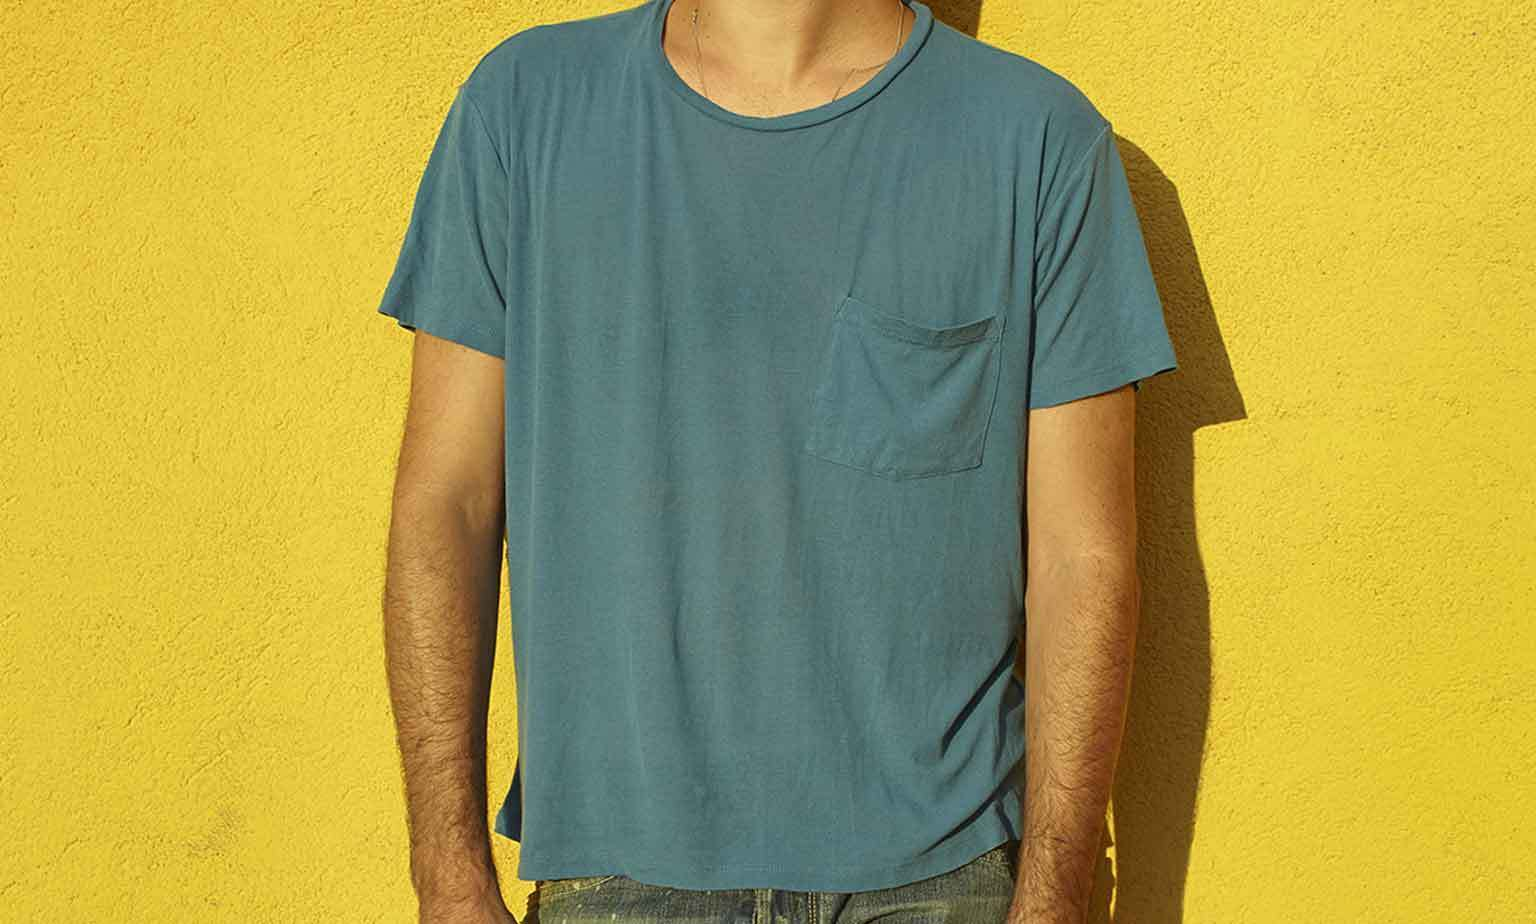 Men's Selected Clothing: T-shirts